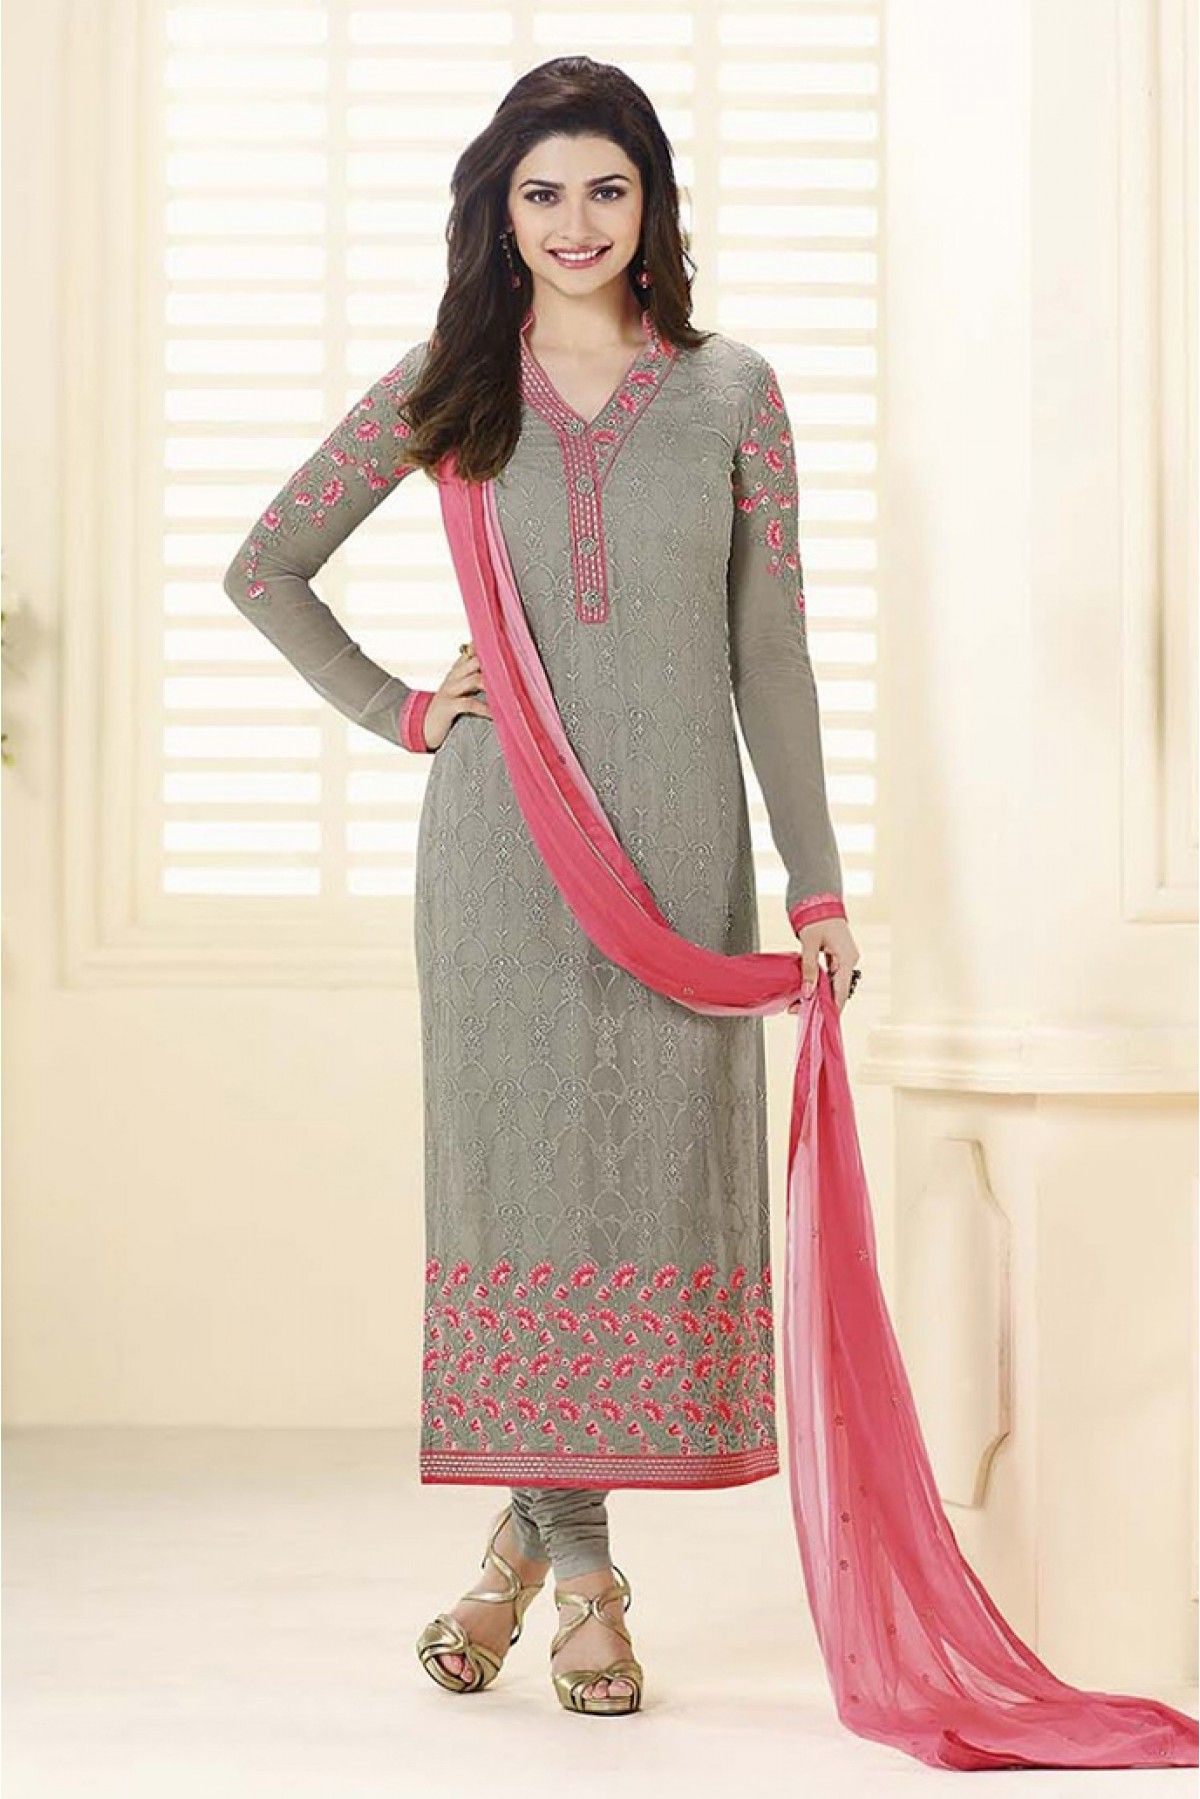 Women's Clothing Indian Readymade Full Stitched Gown Dress Bollywood Suit Salwar Pakistani Heavy A Complete Range Of Specifications